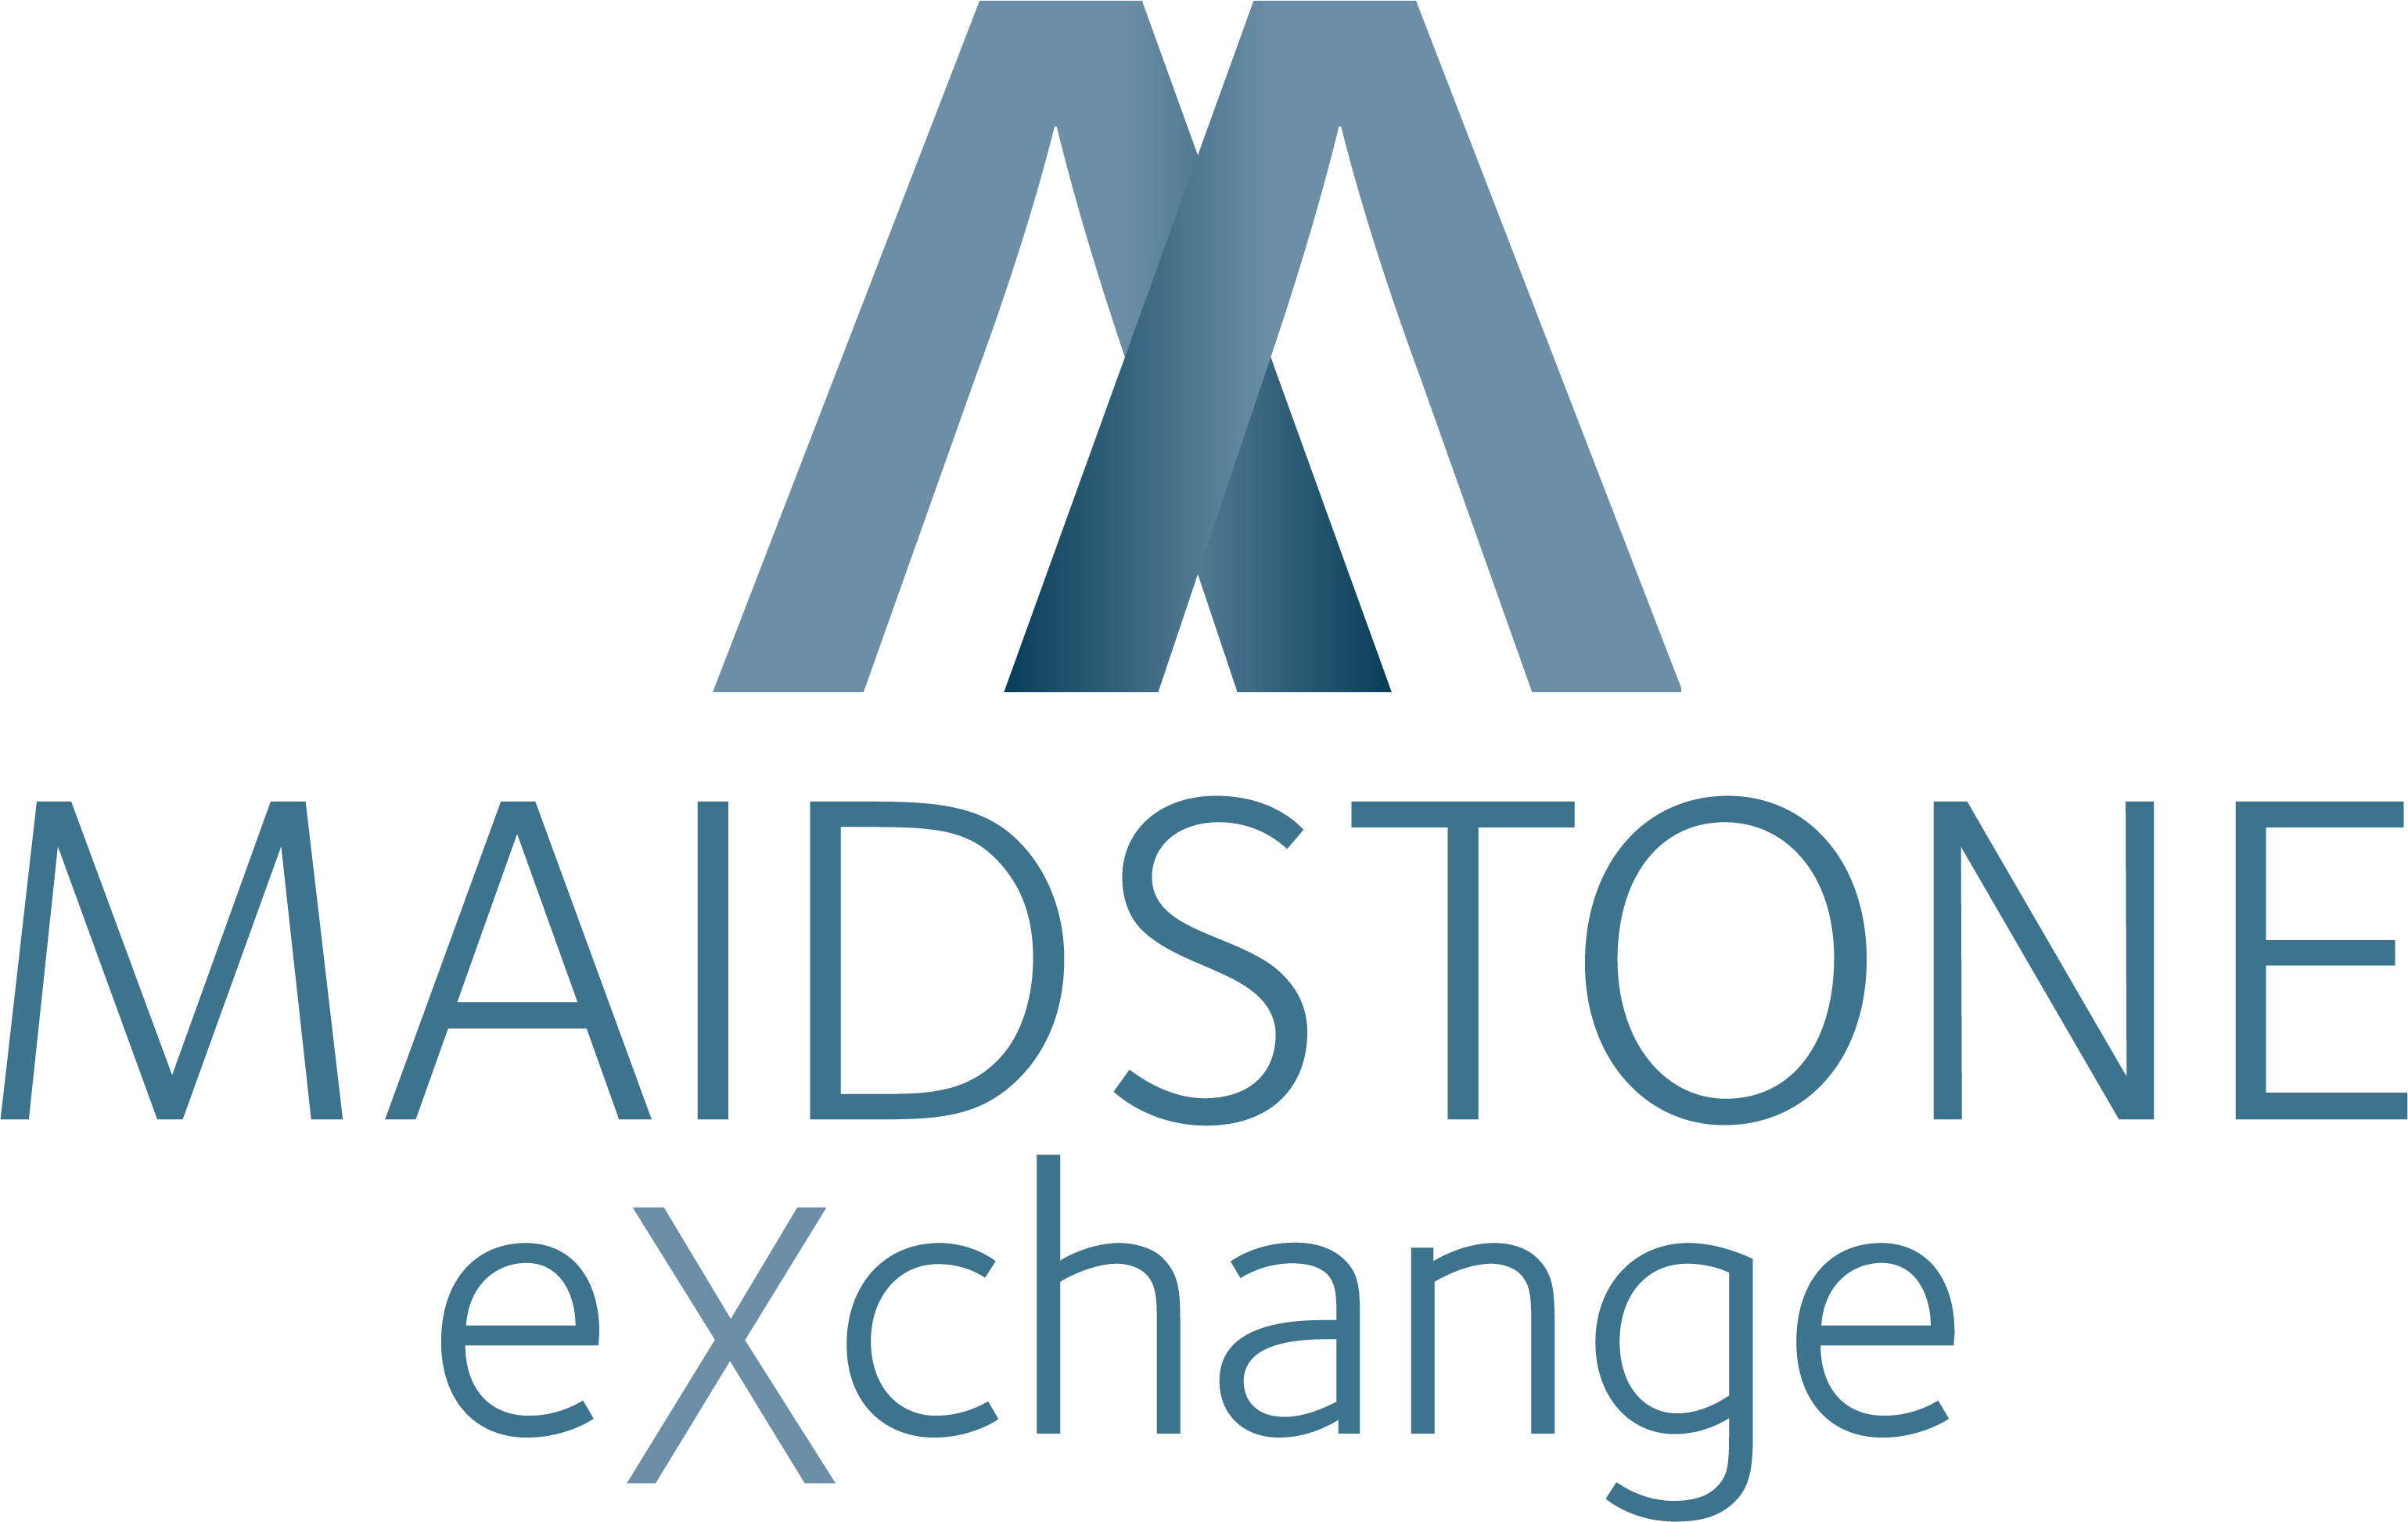 Maidstone Exchange